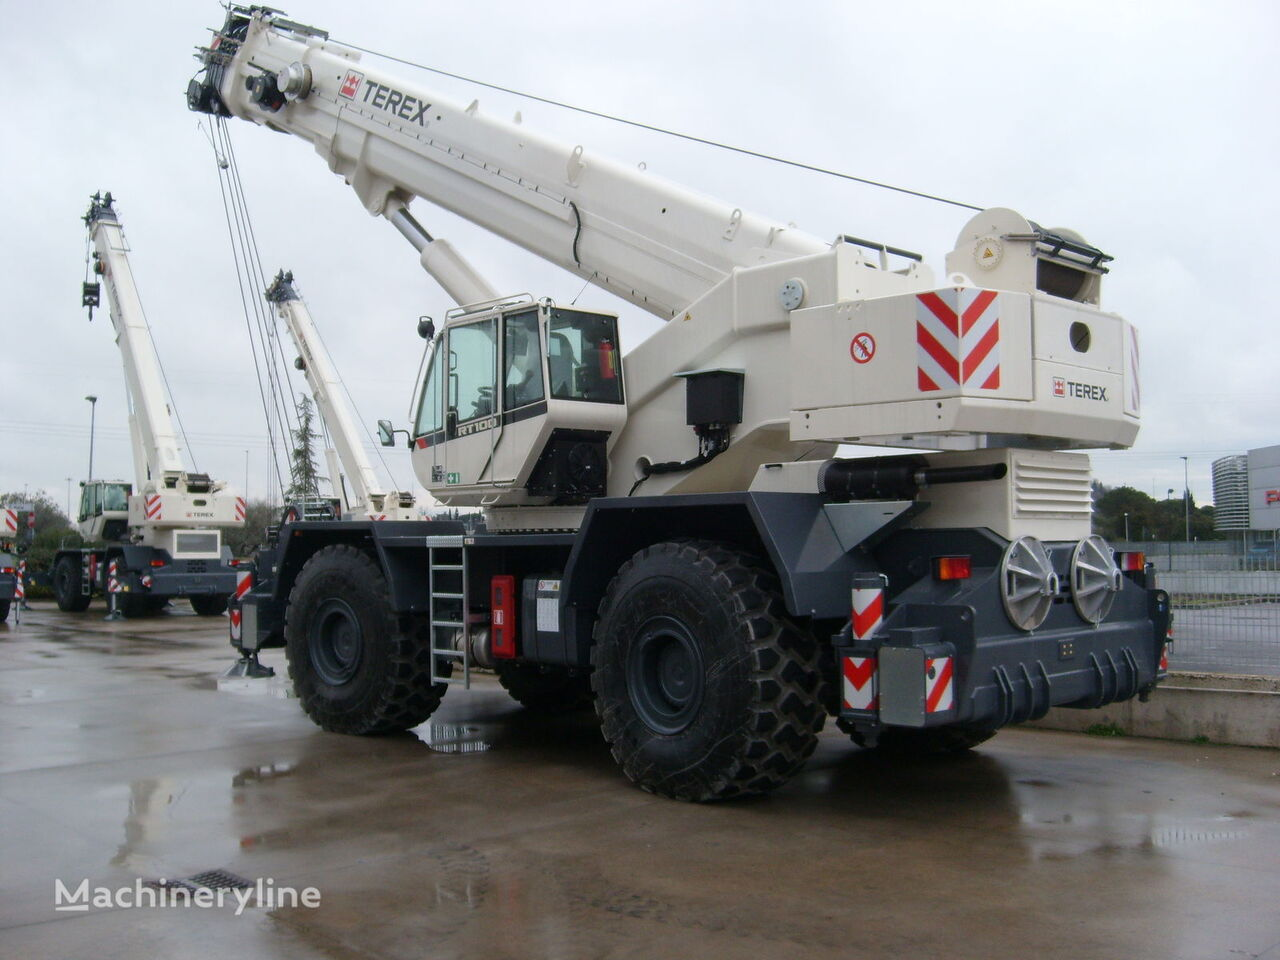 new RT 100 on chassis TEREX RT 100 mobile crane